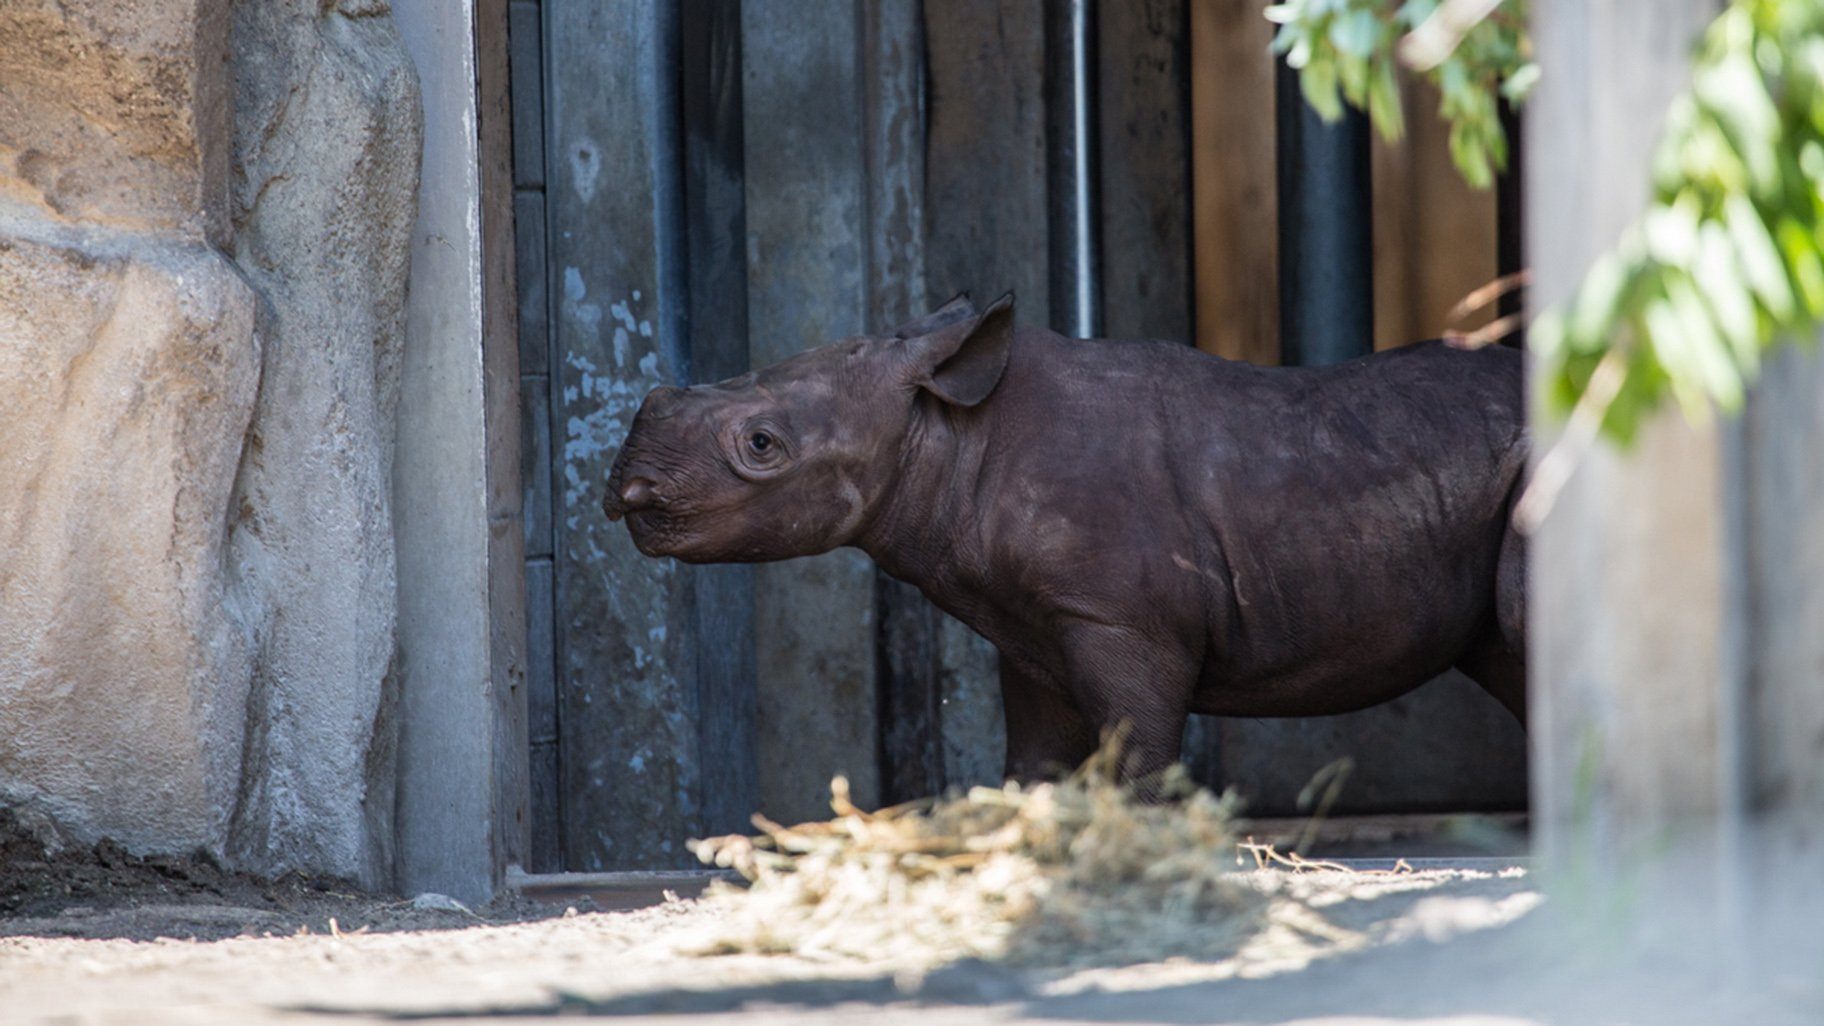 Endangered Baby Rhino Makes First Public Appearance